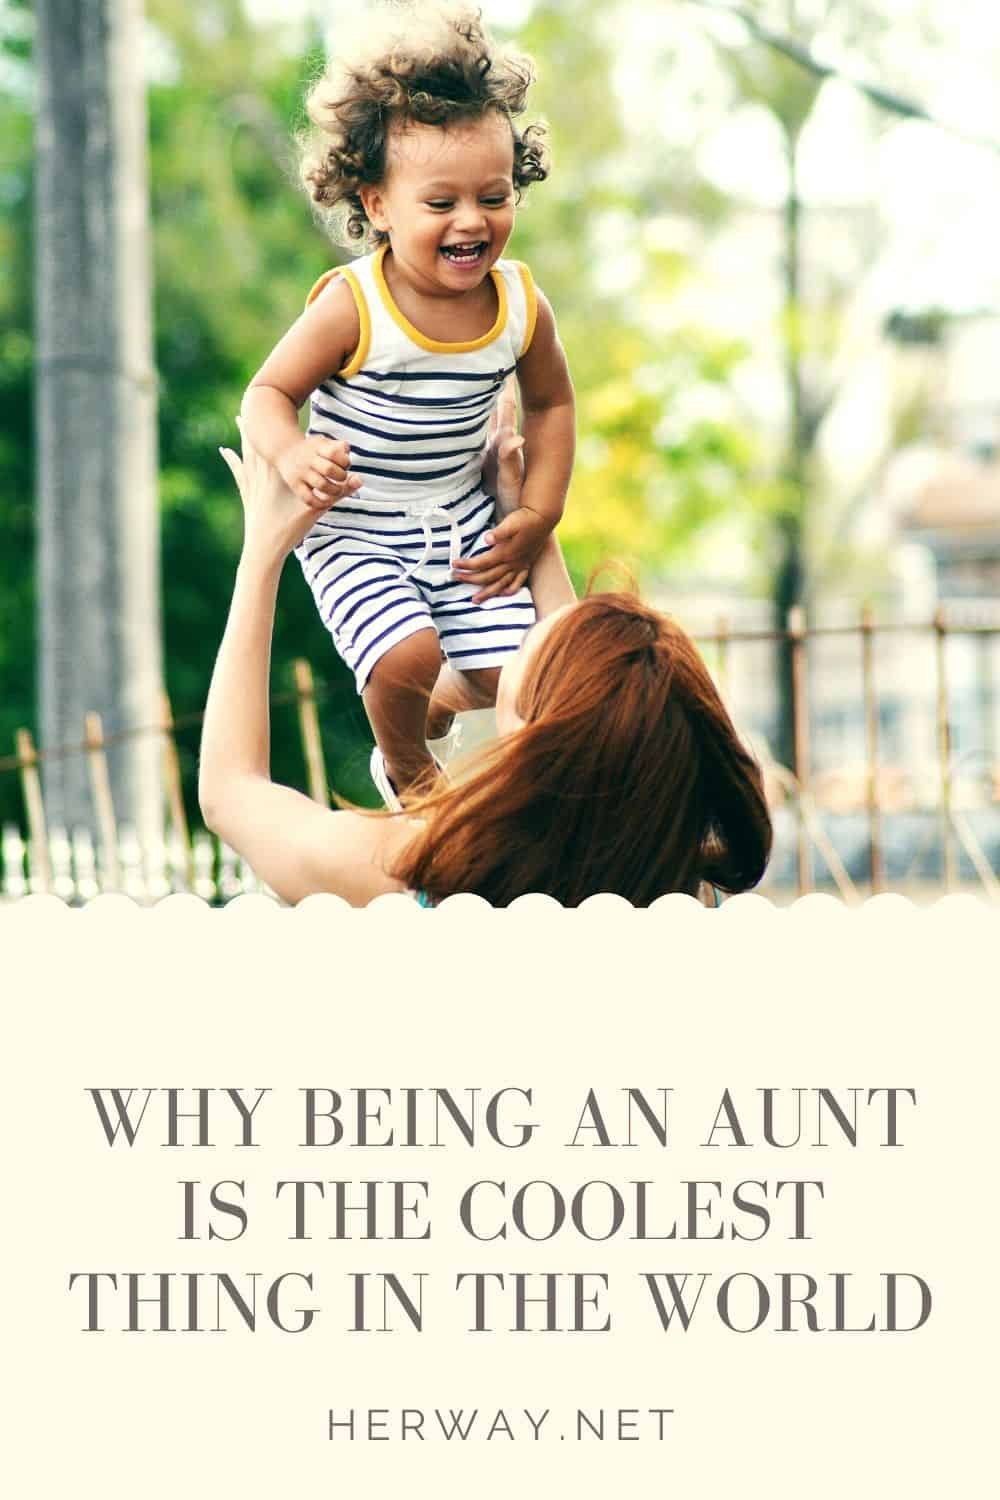 WHY BEING AN AUNT IS THE COOLEST THING IN THE WORLD